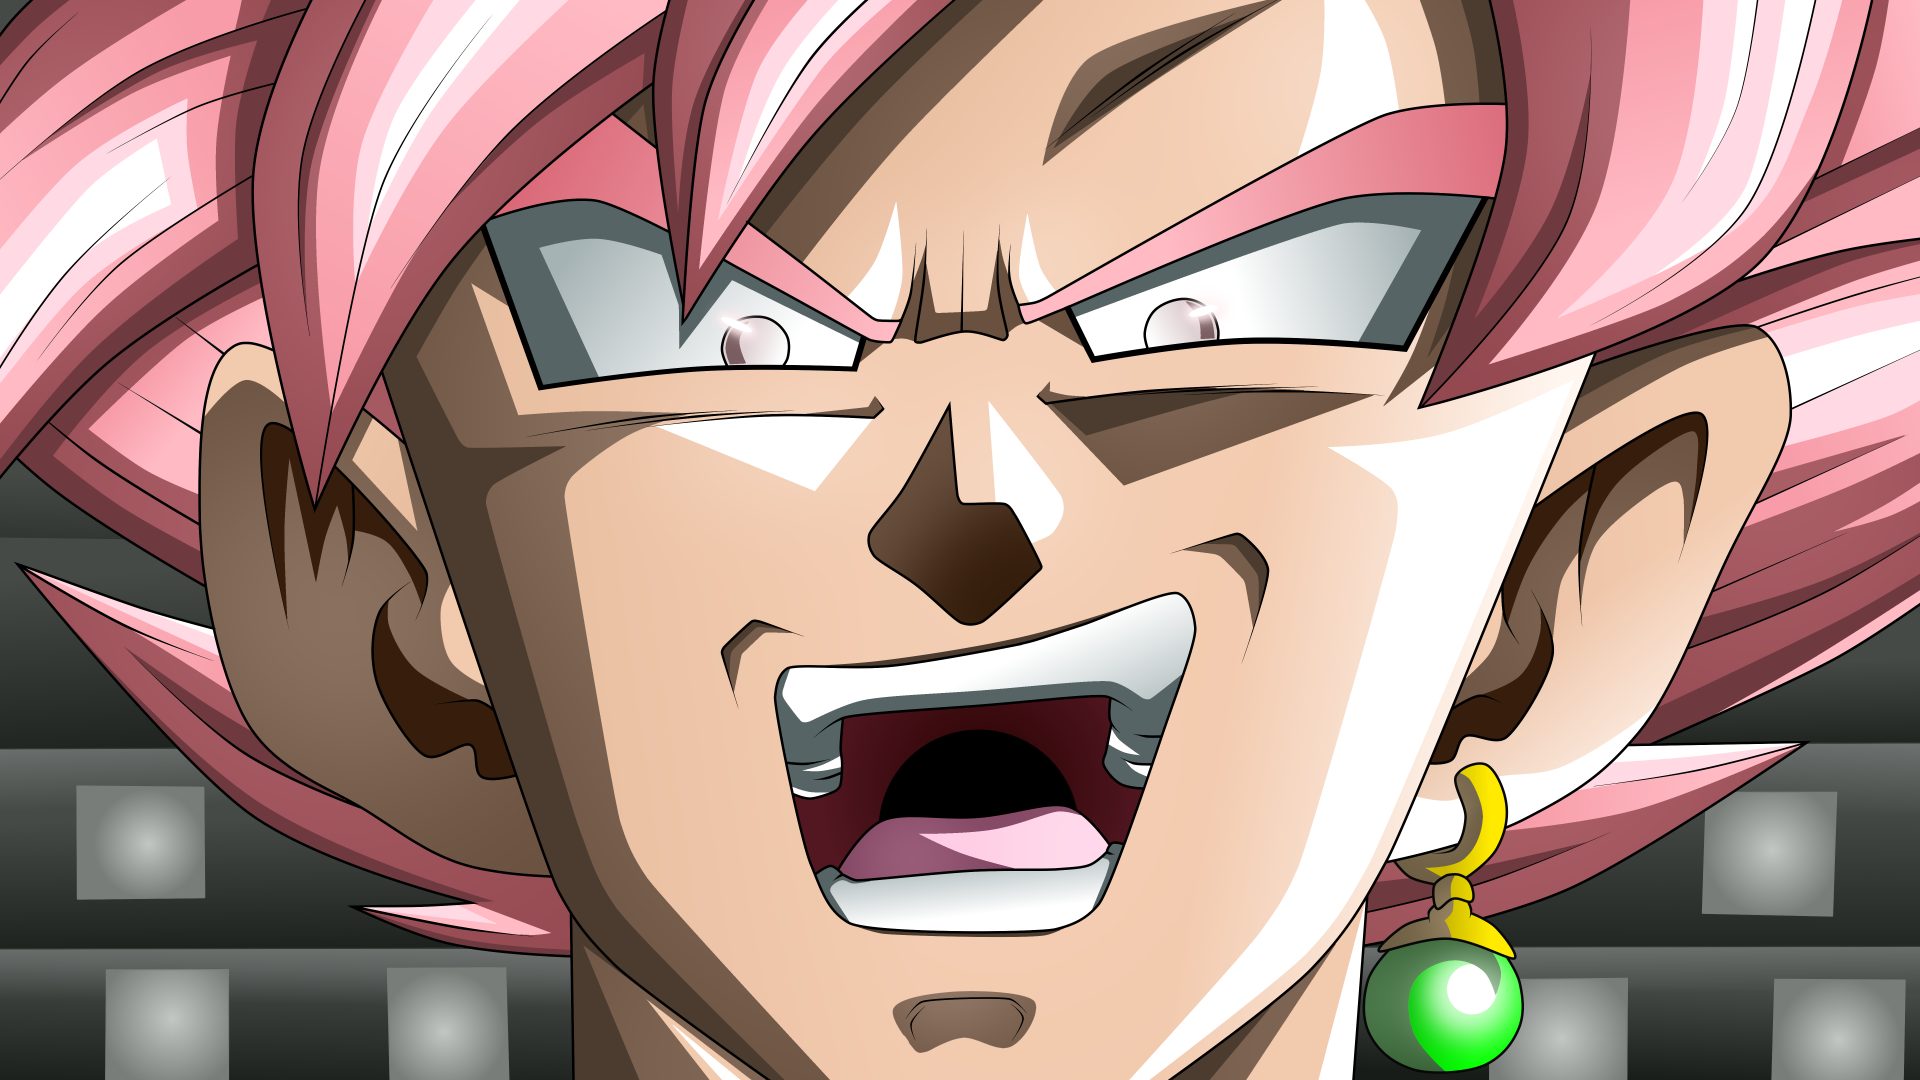 Anime 1920x1080 Dragon Ball Super Dragon Ball Super Saiyajin Rosé Black Goku